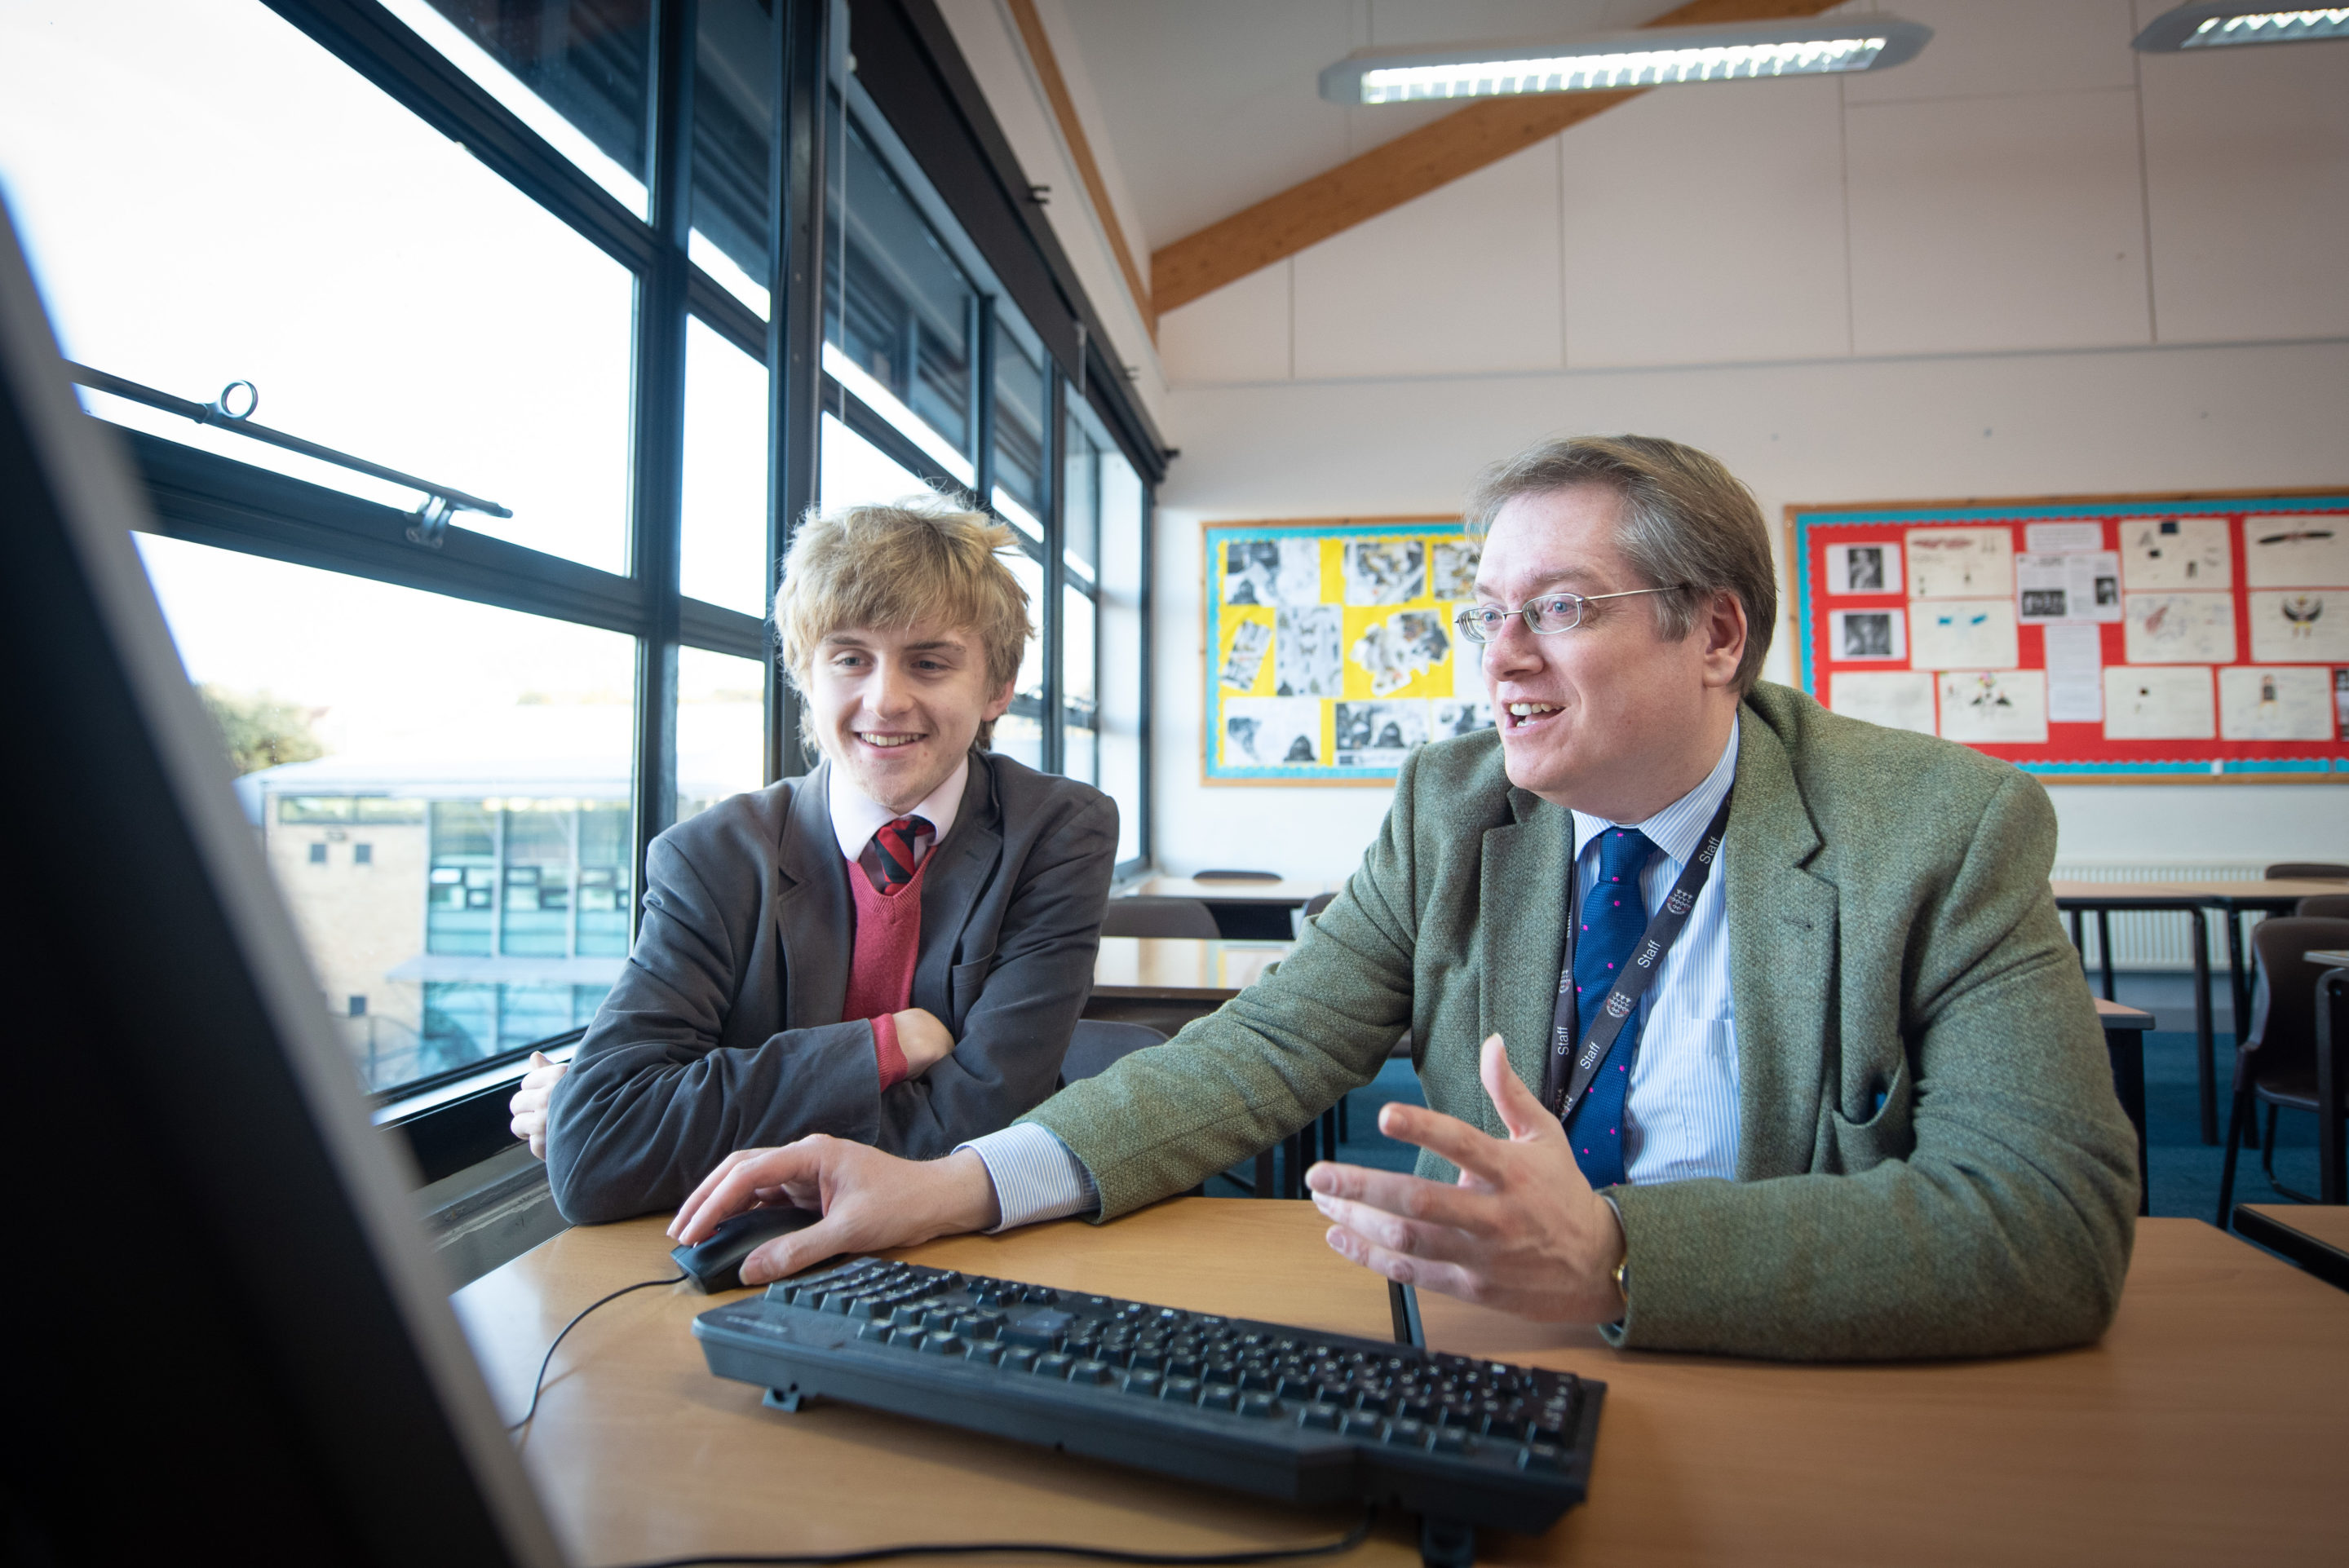 Peter Macdonald, Magdalen College School Director of Higher Education, advises pupil on university entrance.